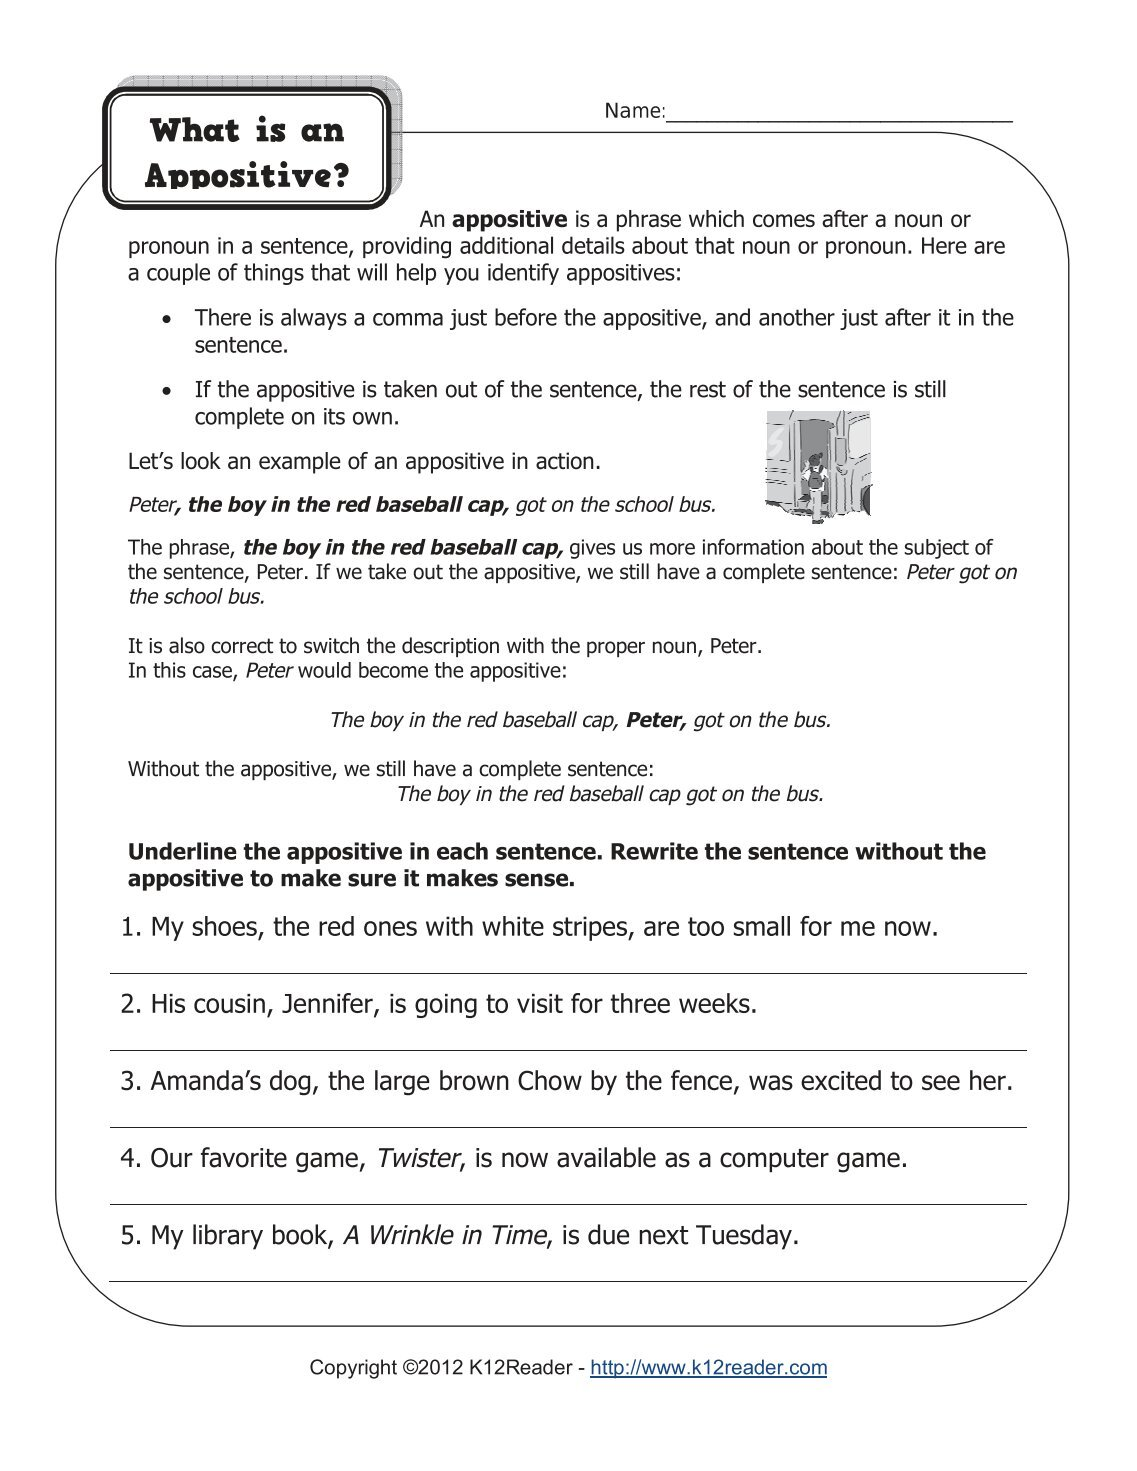 Appositives Worksheet with Answers – careless.me